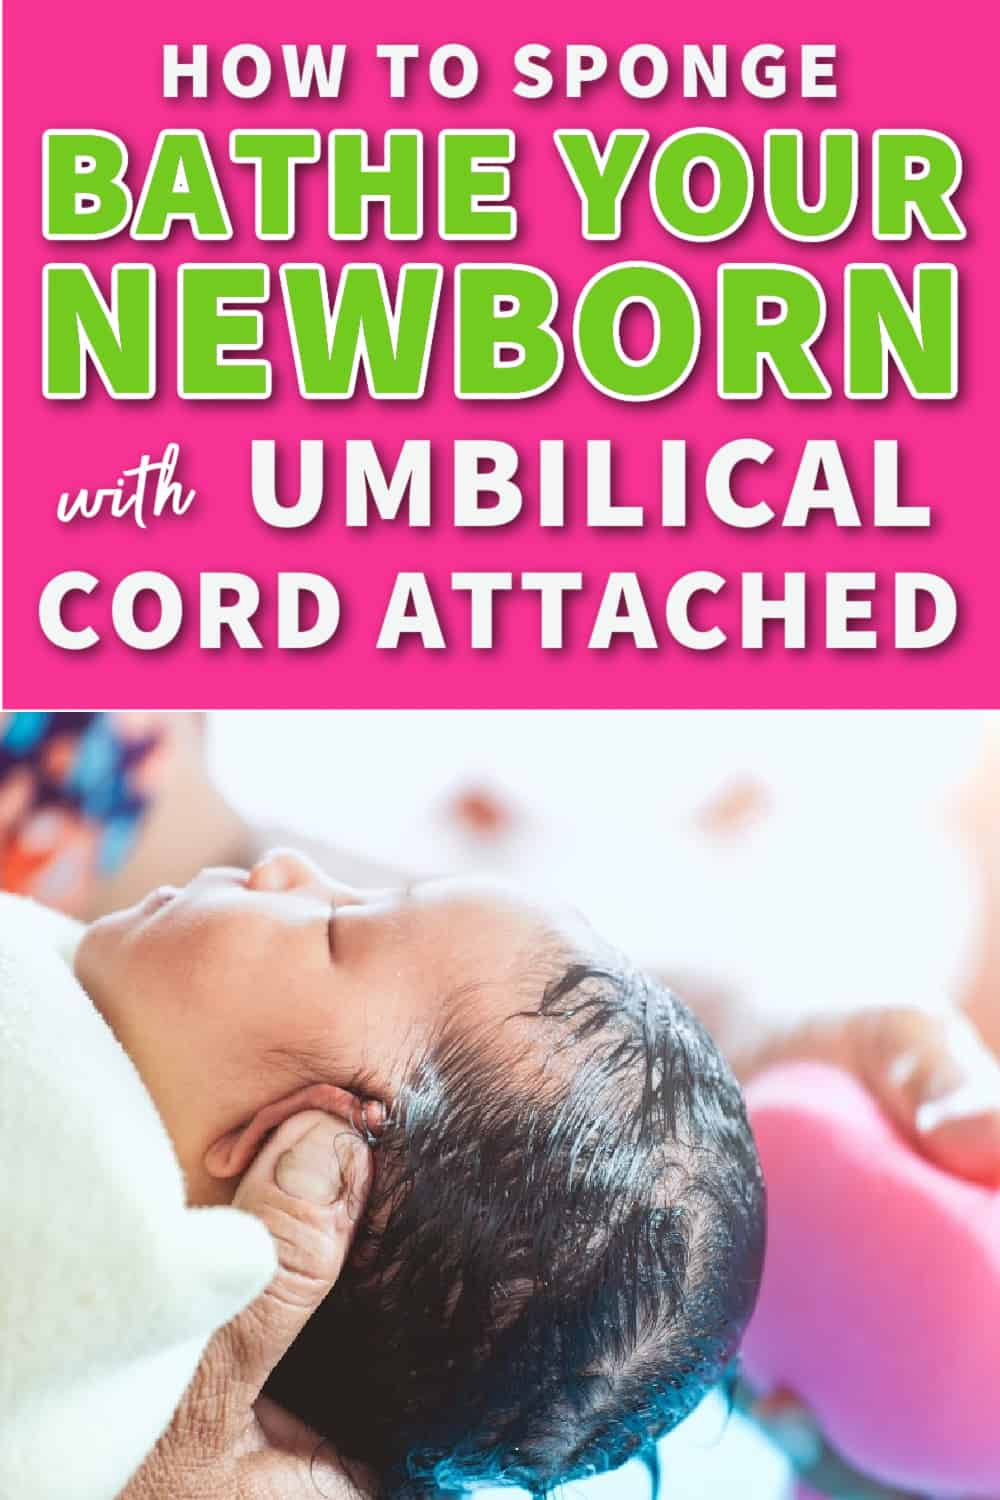 sponge bathe newborn with umbilical cord attached pin image